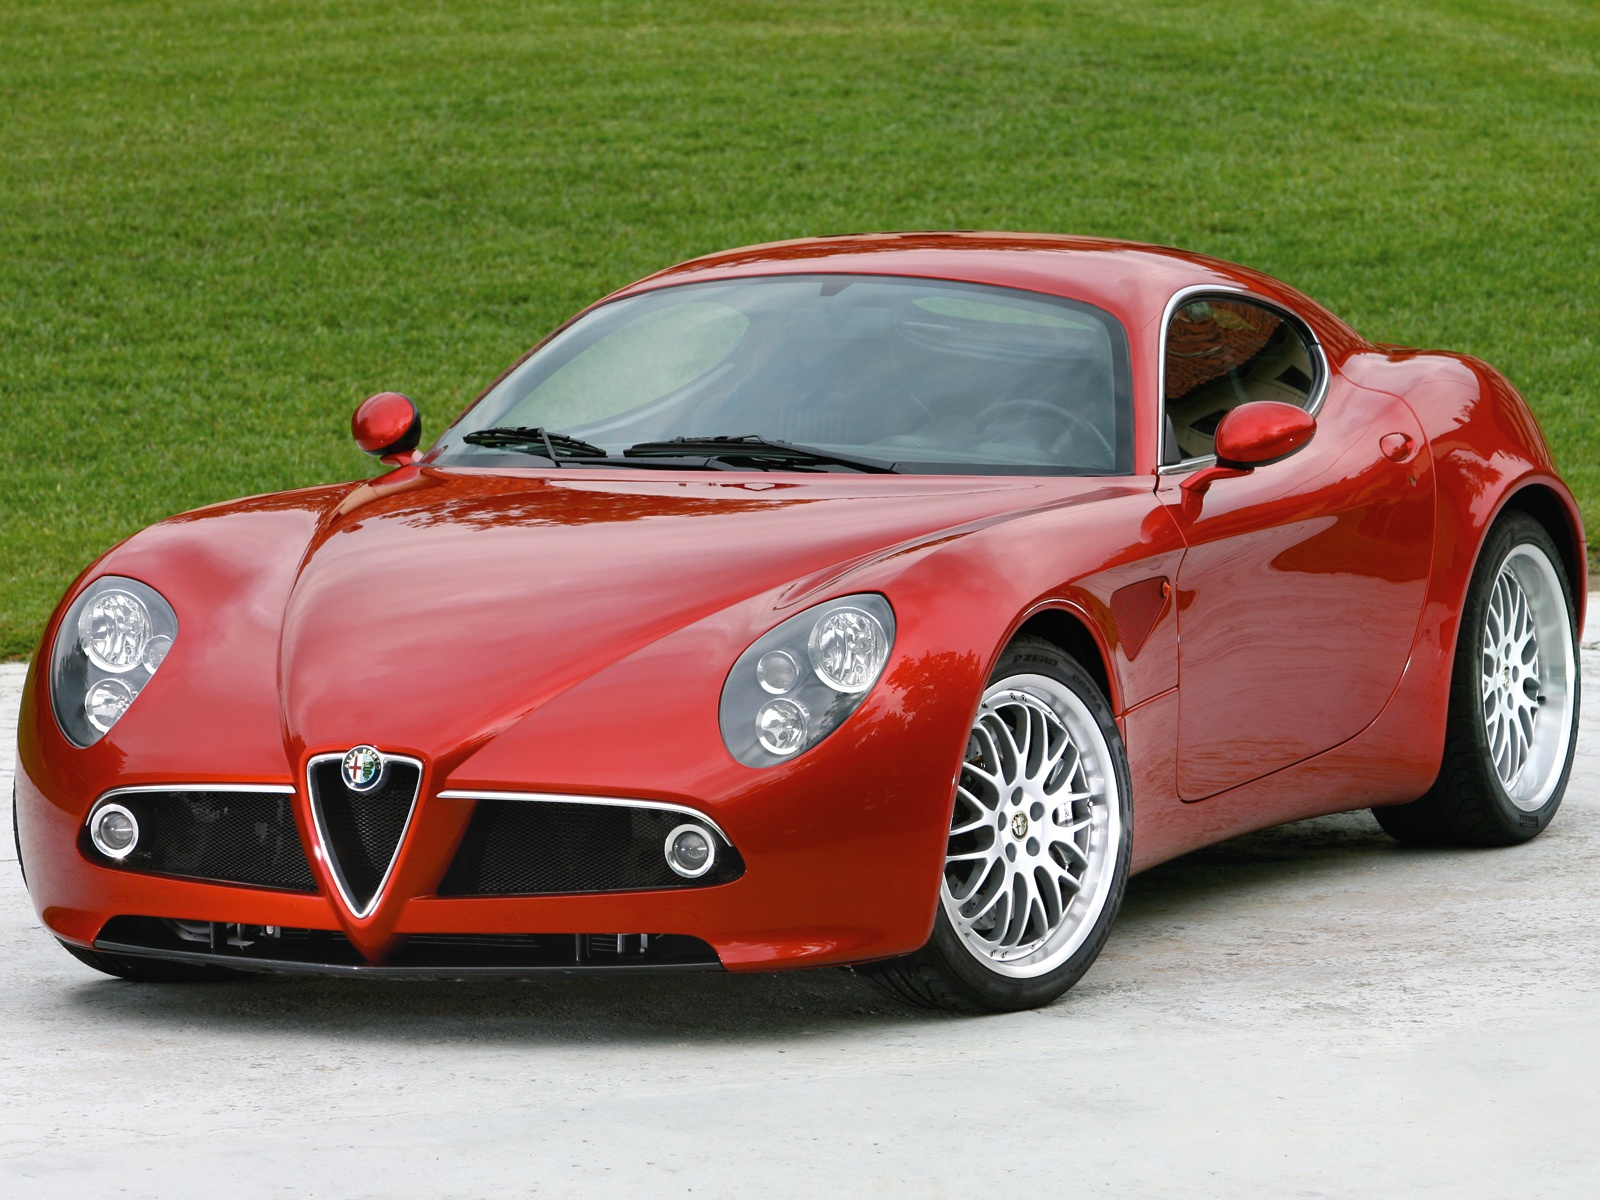 Alfa Romeo 8c competizione Pictures Wallpapers Photos & Quality Images High Resolution